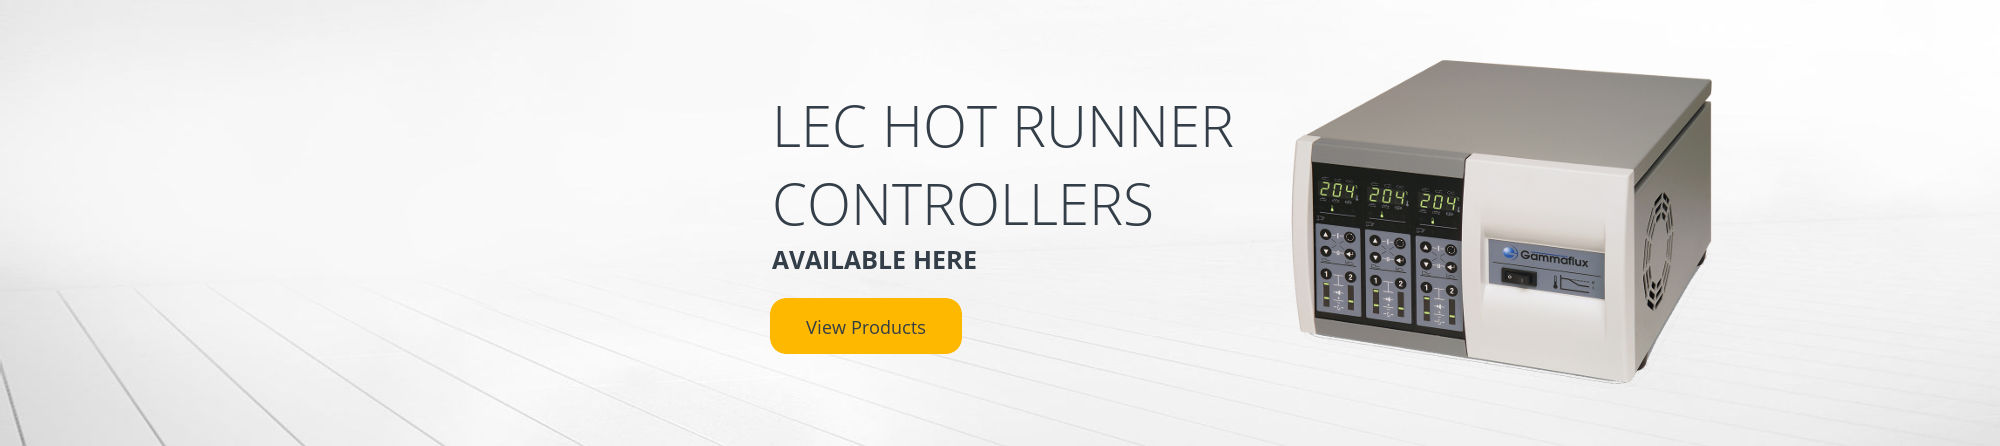 HOT RUNNER CONTROLLER SLIDER